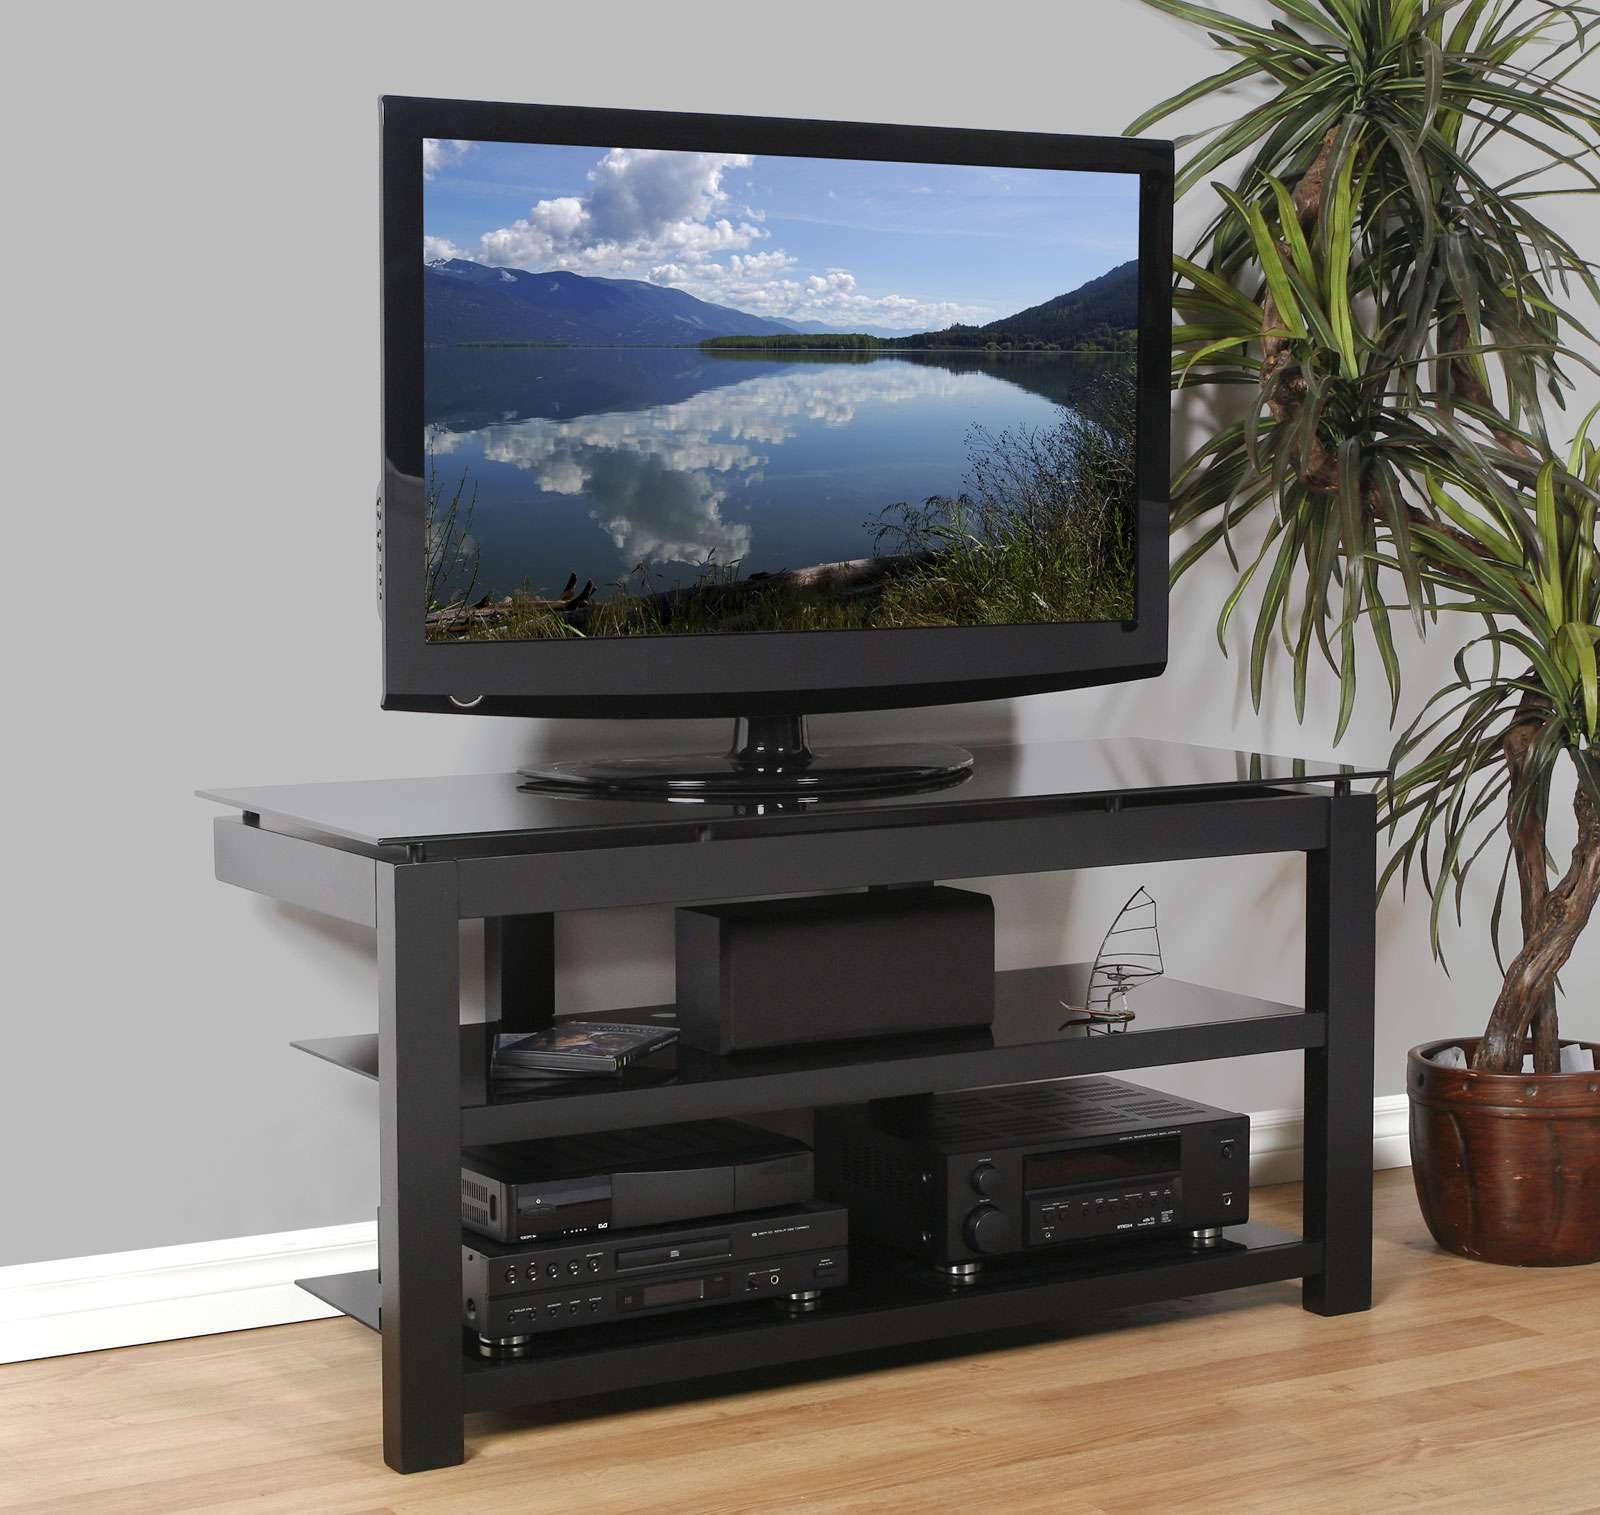 50 Inch Flat Screen Tv Stand – Natural Wood Veneers And Black Inside Wooden Tv Stands For 50 Inch Tv (View 1 of 15)